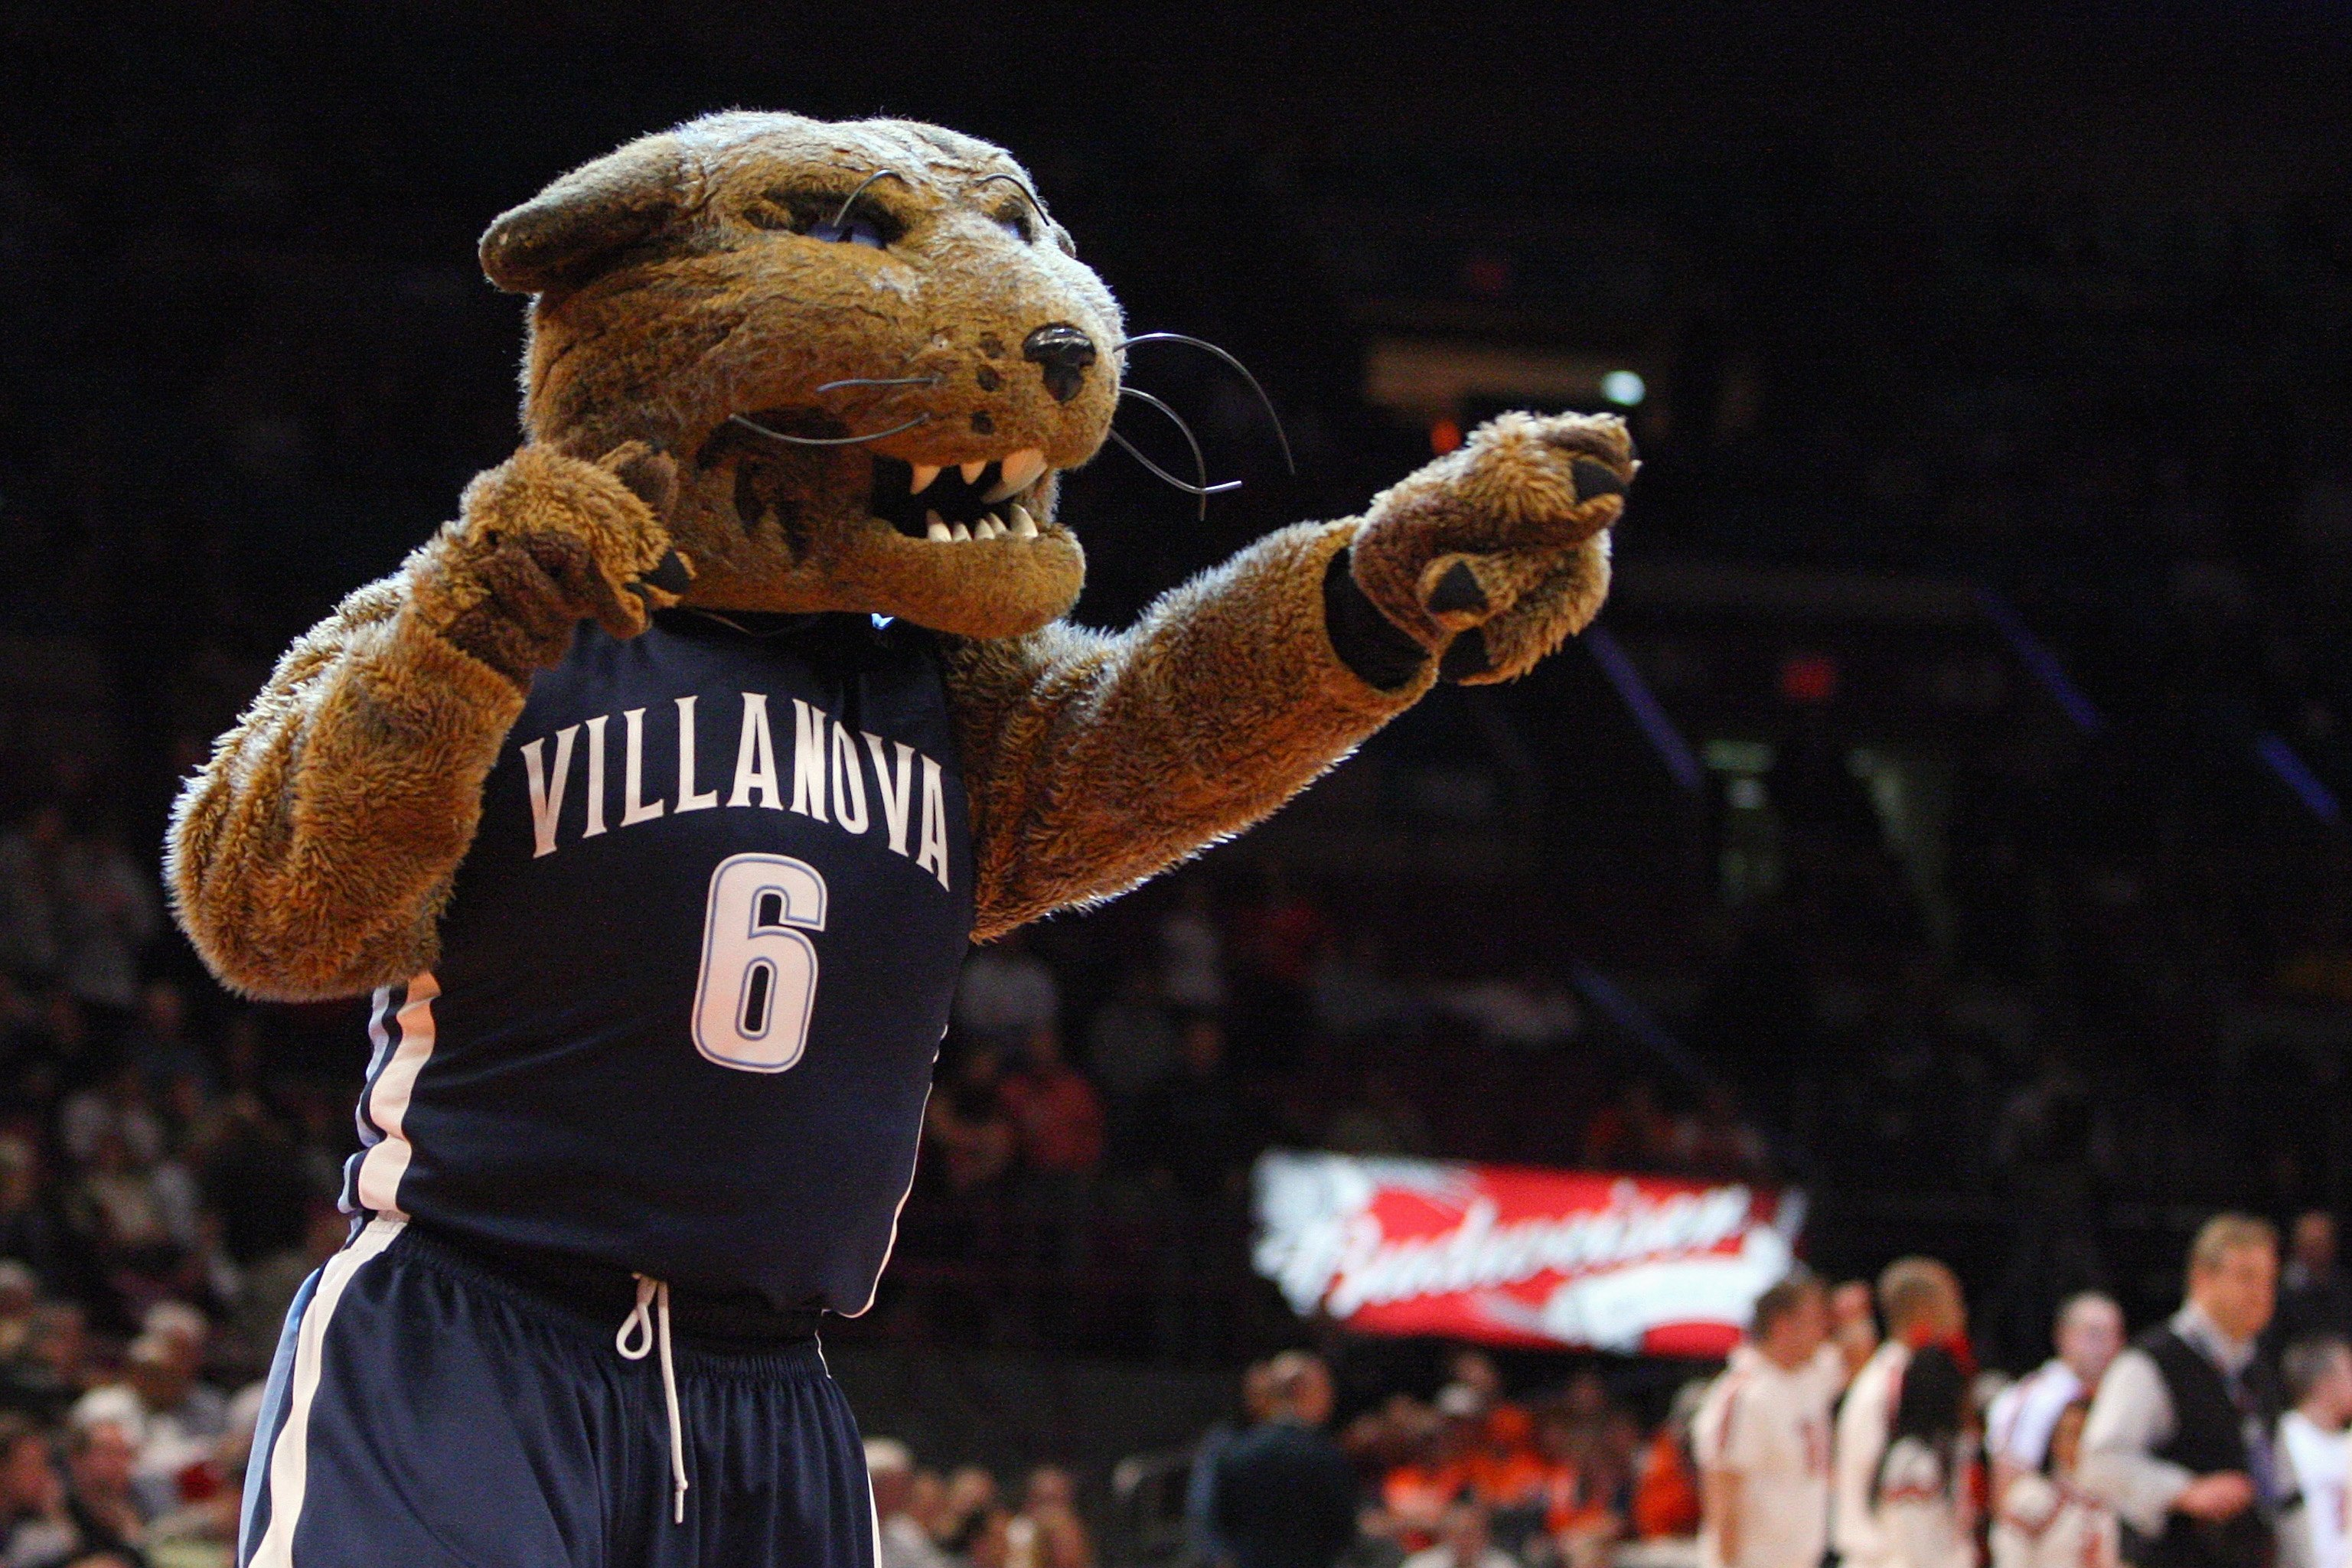 NEW YORK - MARCH 13:  Villanova Wildcats mascot Will D. Cat cheers during the semifinal round of the Big East Tournament against the Louisville Cardinals at Madison Square Garden on March 13, 2009 in New York City. (Photo by Jim McIsaac/Getty Images)